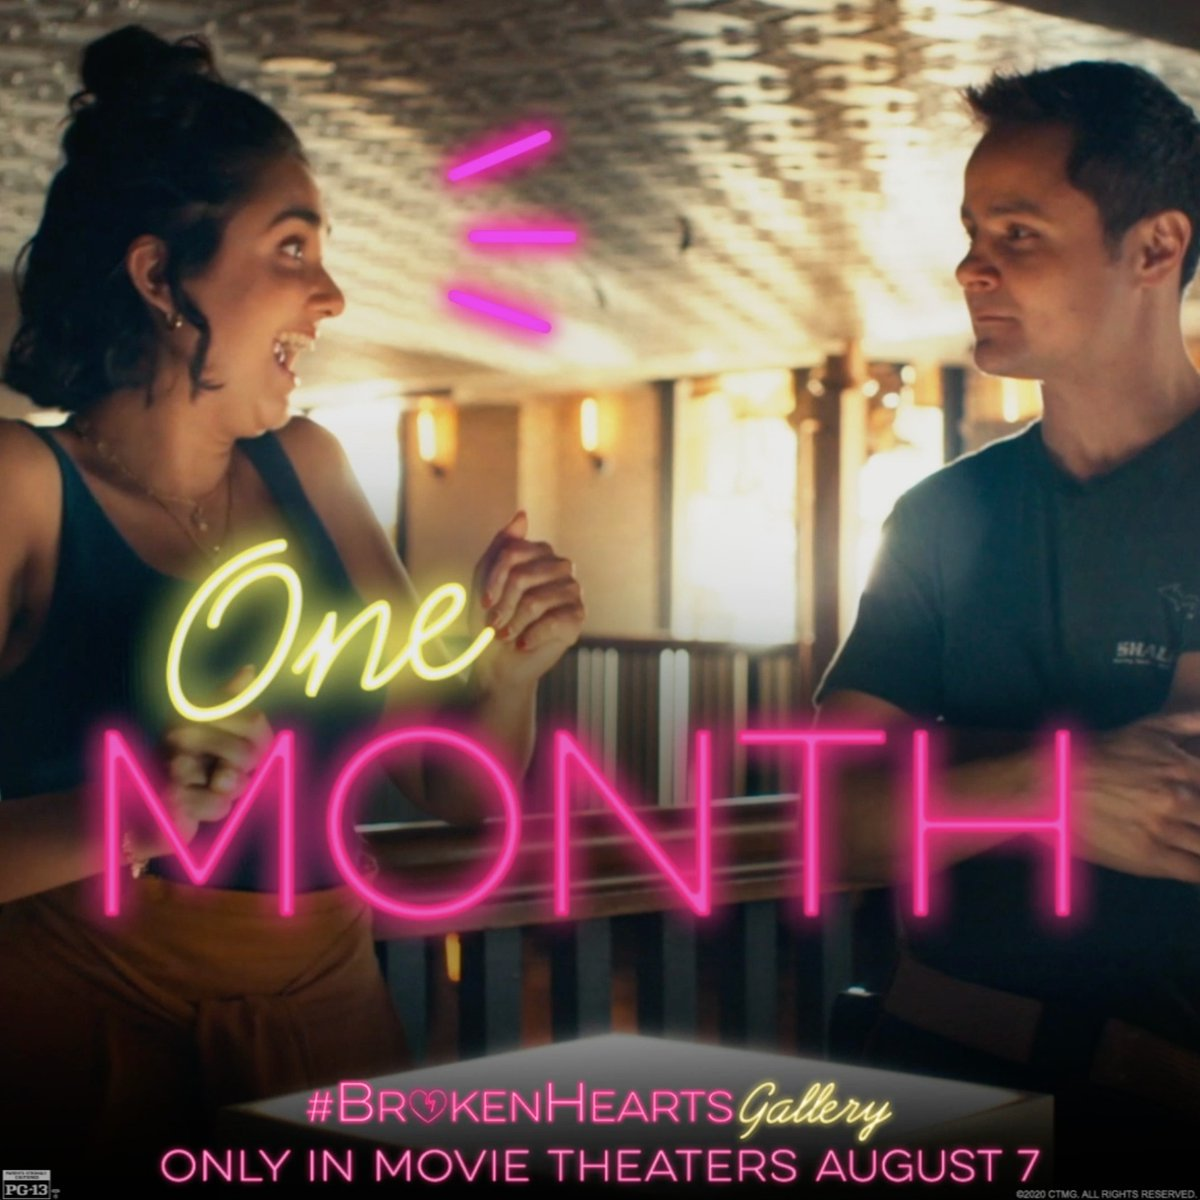 I can smell the popcorn already. 🍿😍 The #BrokenHeartsGallery is coming to movie theaters in ONE MONTH! 🎥🎟